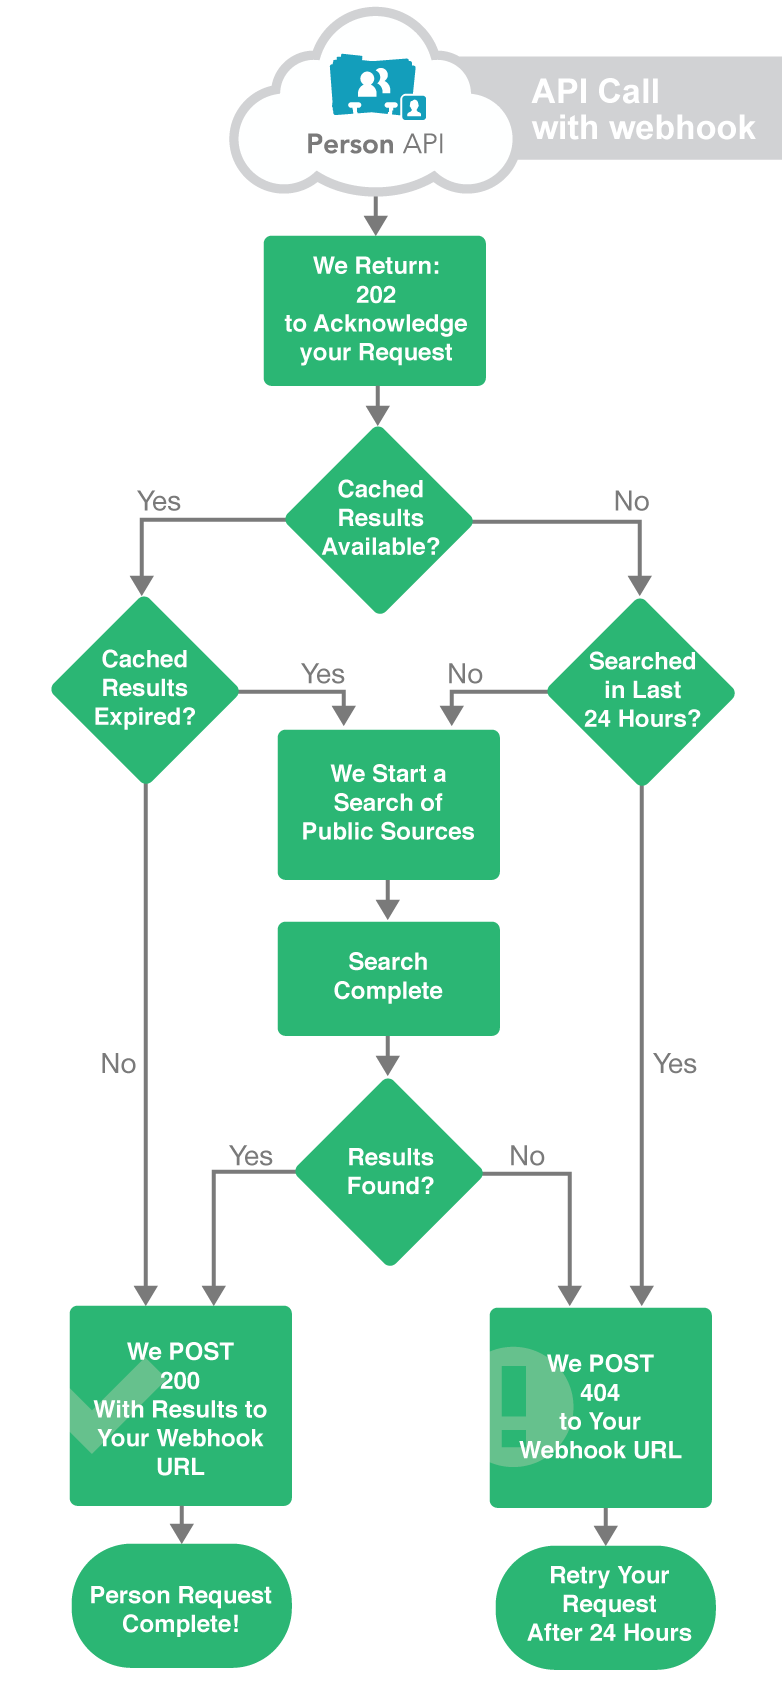 FullContact Person API Webhooks Flow Diagram